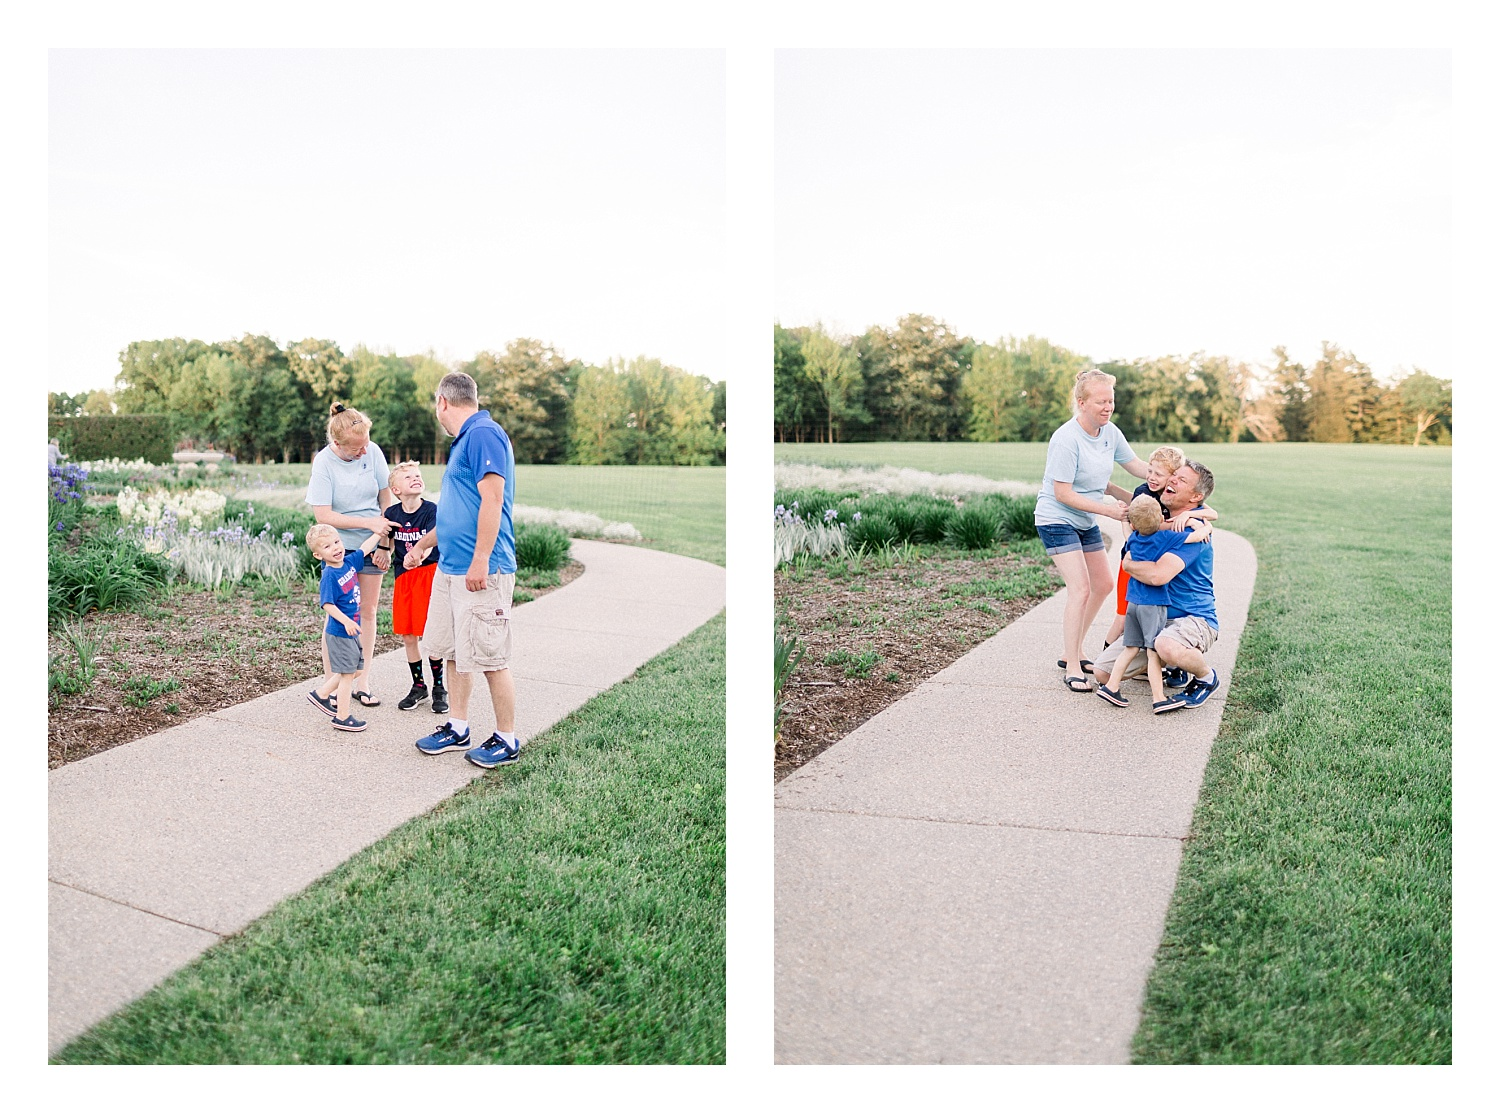 Wisconsin-Family-Photographers-Elle-x-Troy-Photography-The-Bopp-Family-Robert-Allerton-Park-Monticello-Illinois_0018.jpg